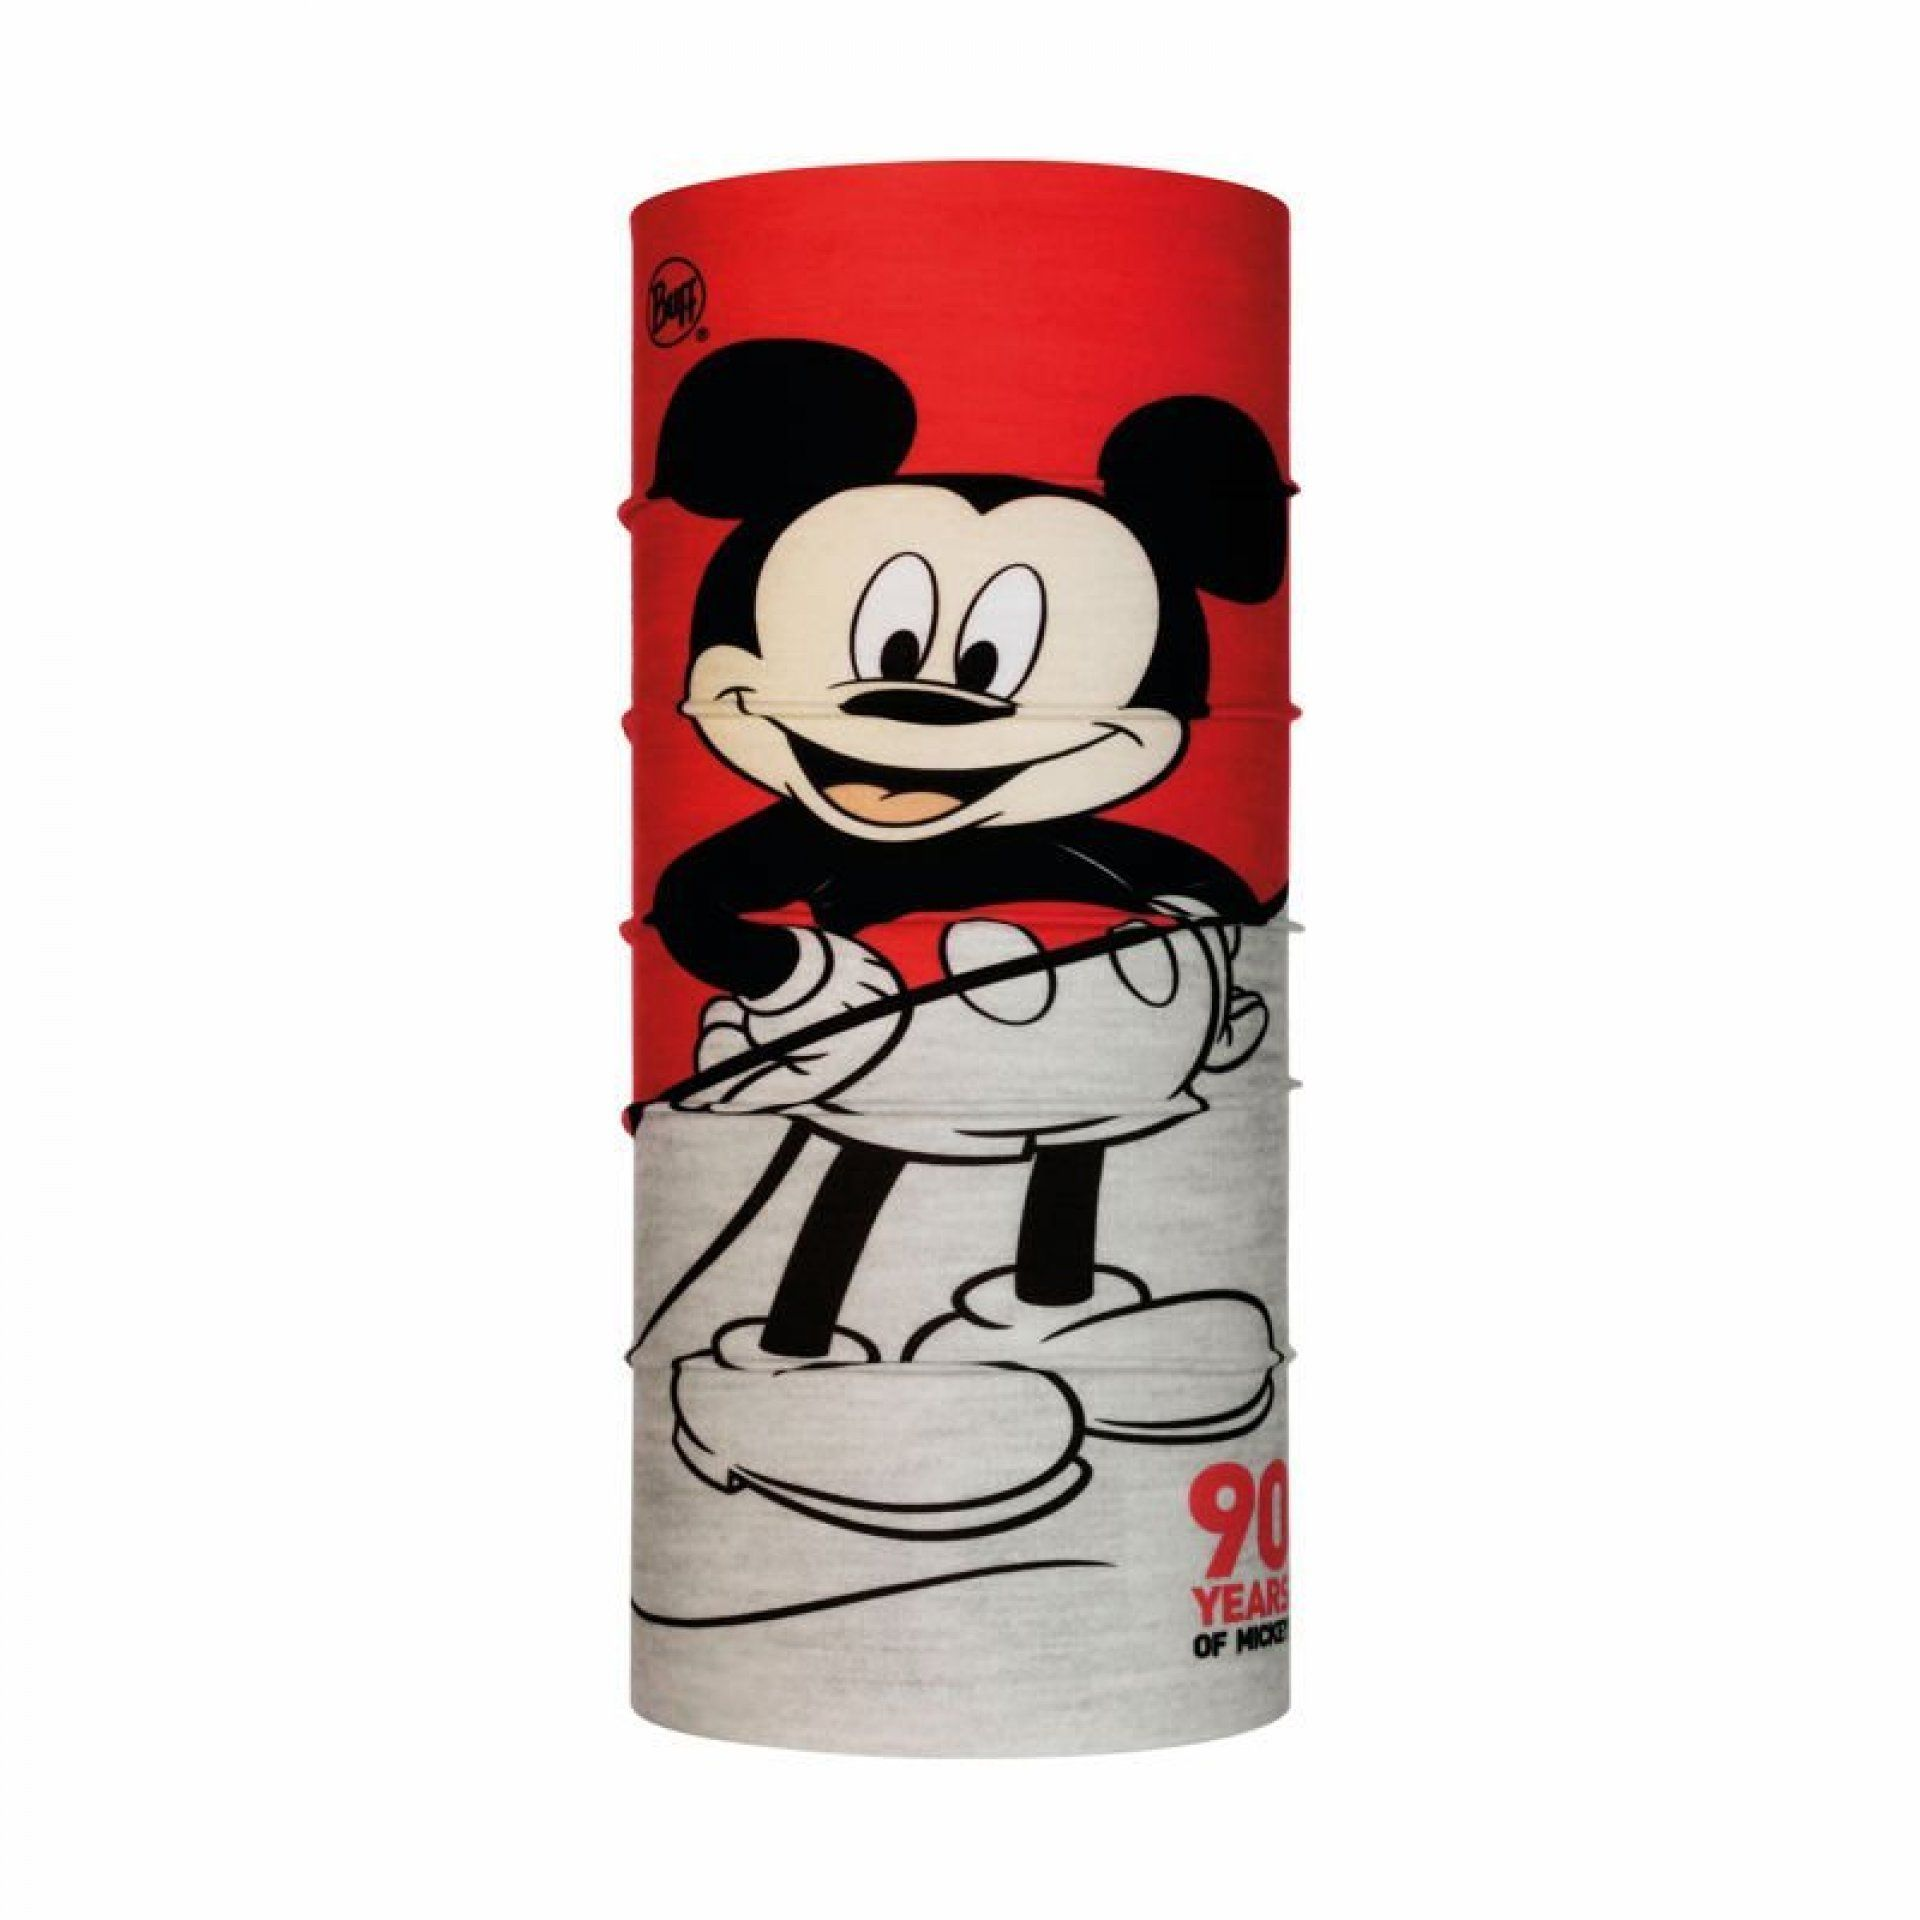 CHUSTA BUFF JUNIOR ORIGINAL US MICKEY 90TH MULTI